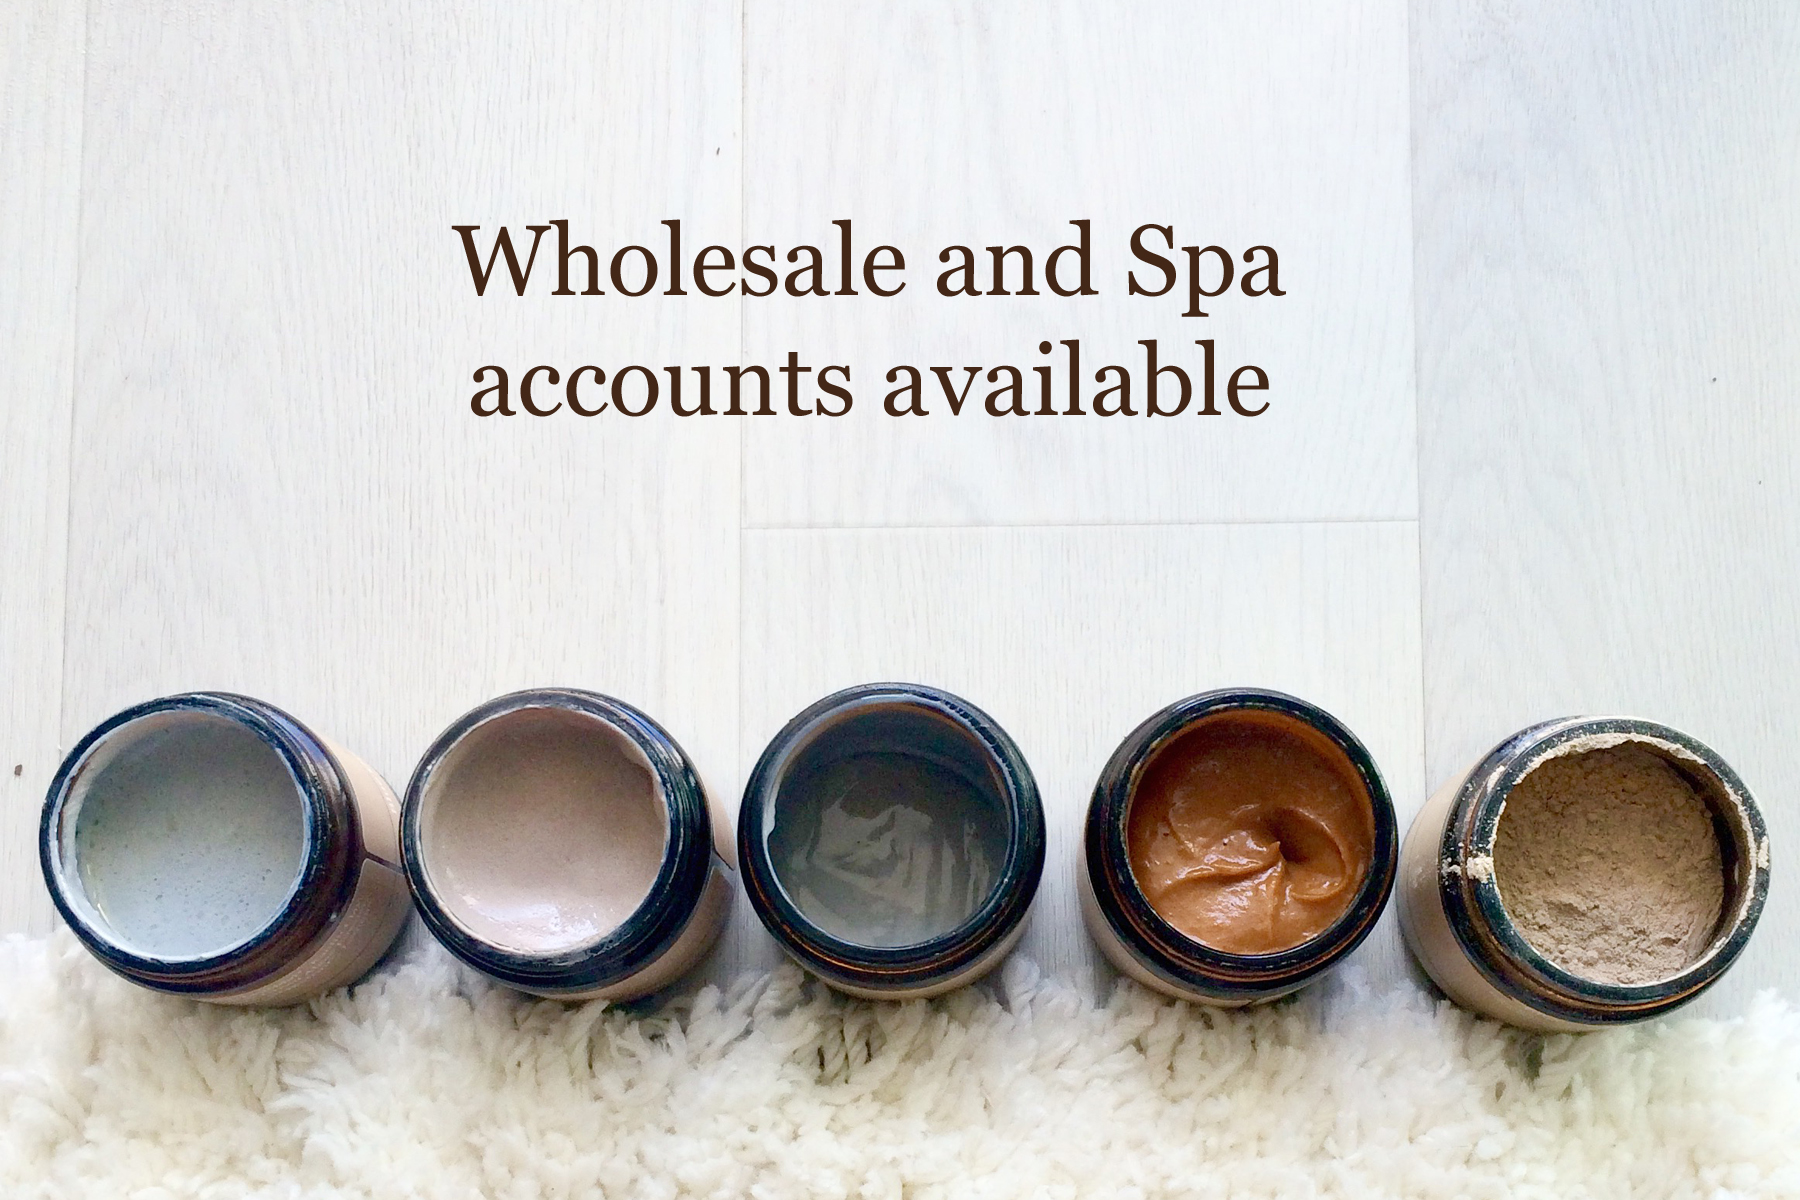 We work with independent estheticians, spas, and boutique retail stores (online and in store).